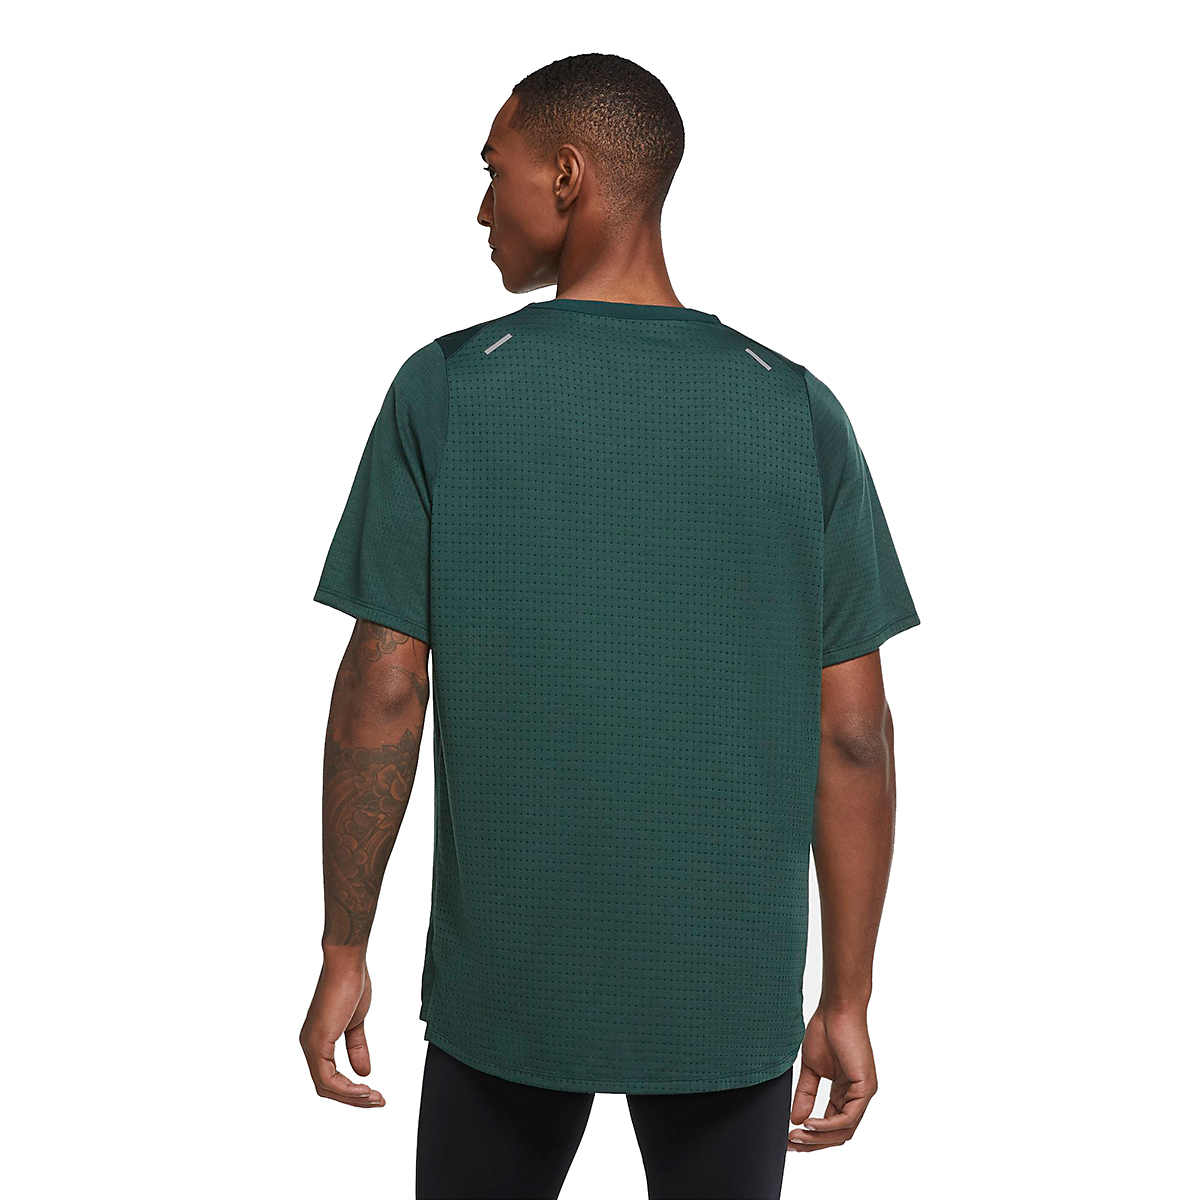 Men's Nike Rise 365 Running Top - Color: Pro Green - Size: S, Pro Green, large, image 4